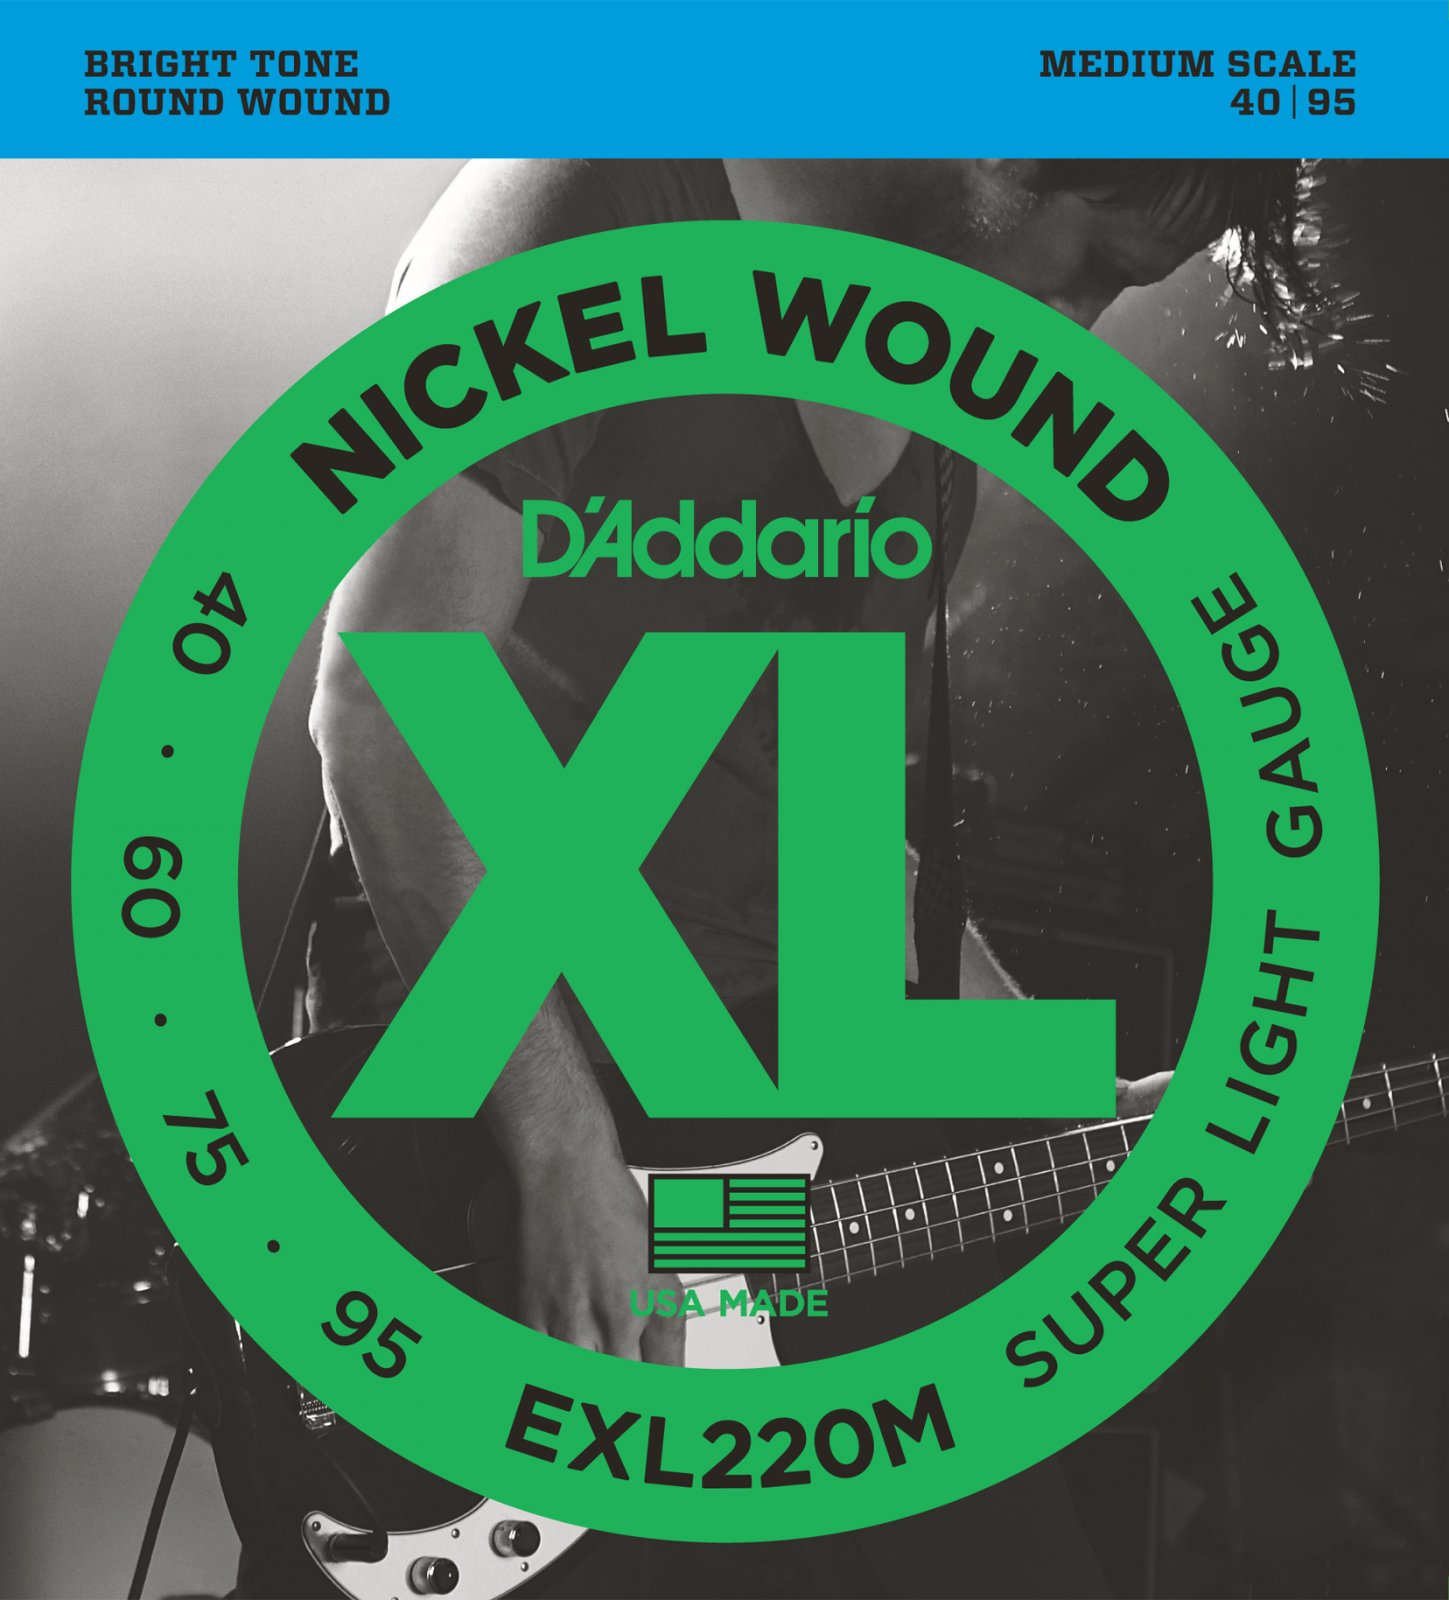 D'Addario EXL220M Nickel Wound Electric Bass Super Light 40-95 Medium Scale